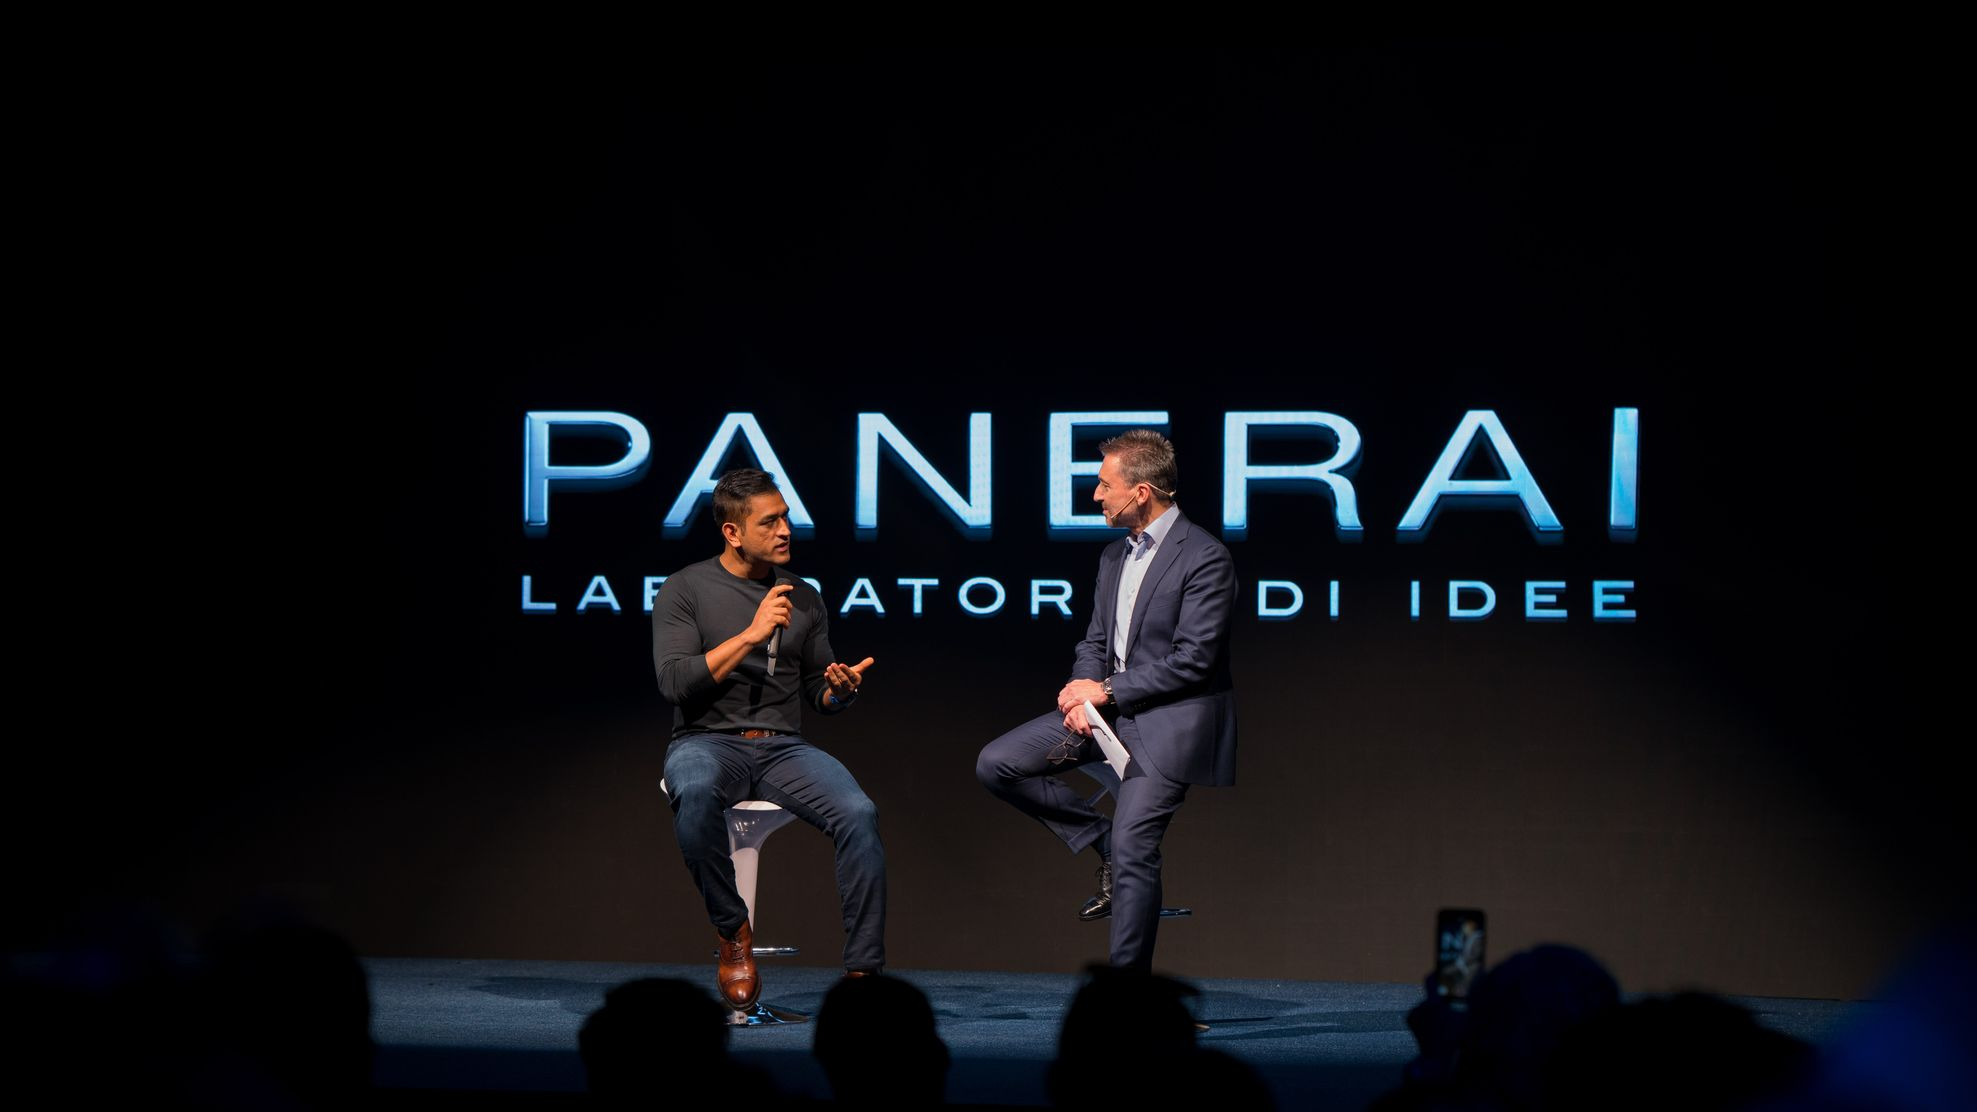 ms dhoni panerai00002 - Panerai plays the helicopter shot with MS Dhoni special edition watches